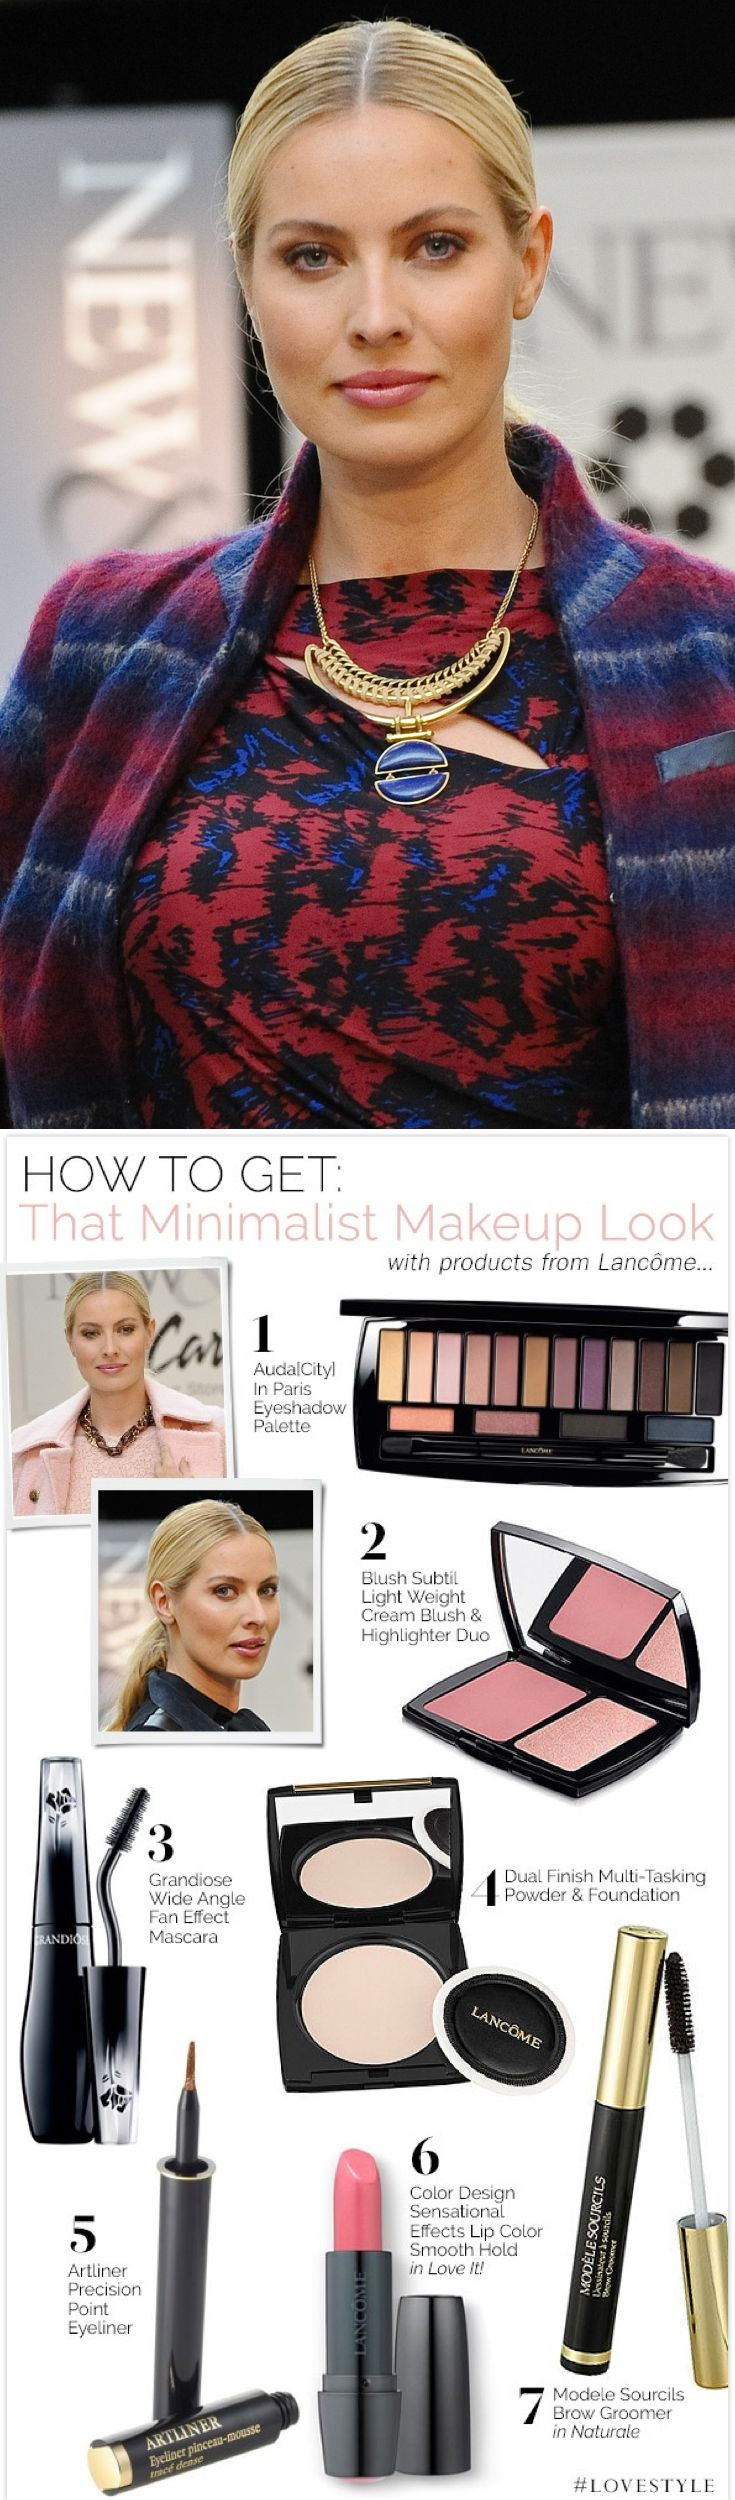 How to get that minimalist makeup look with products from Lancôme.